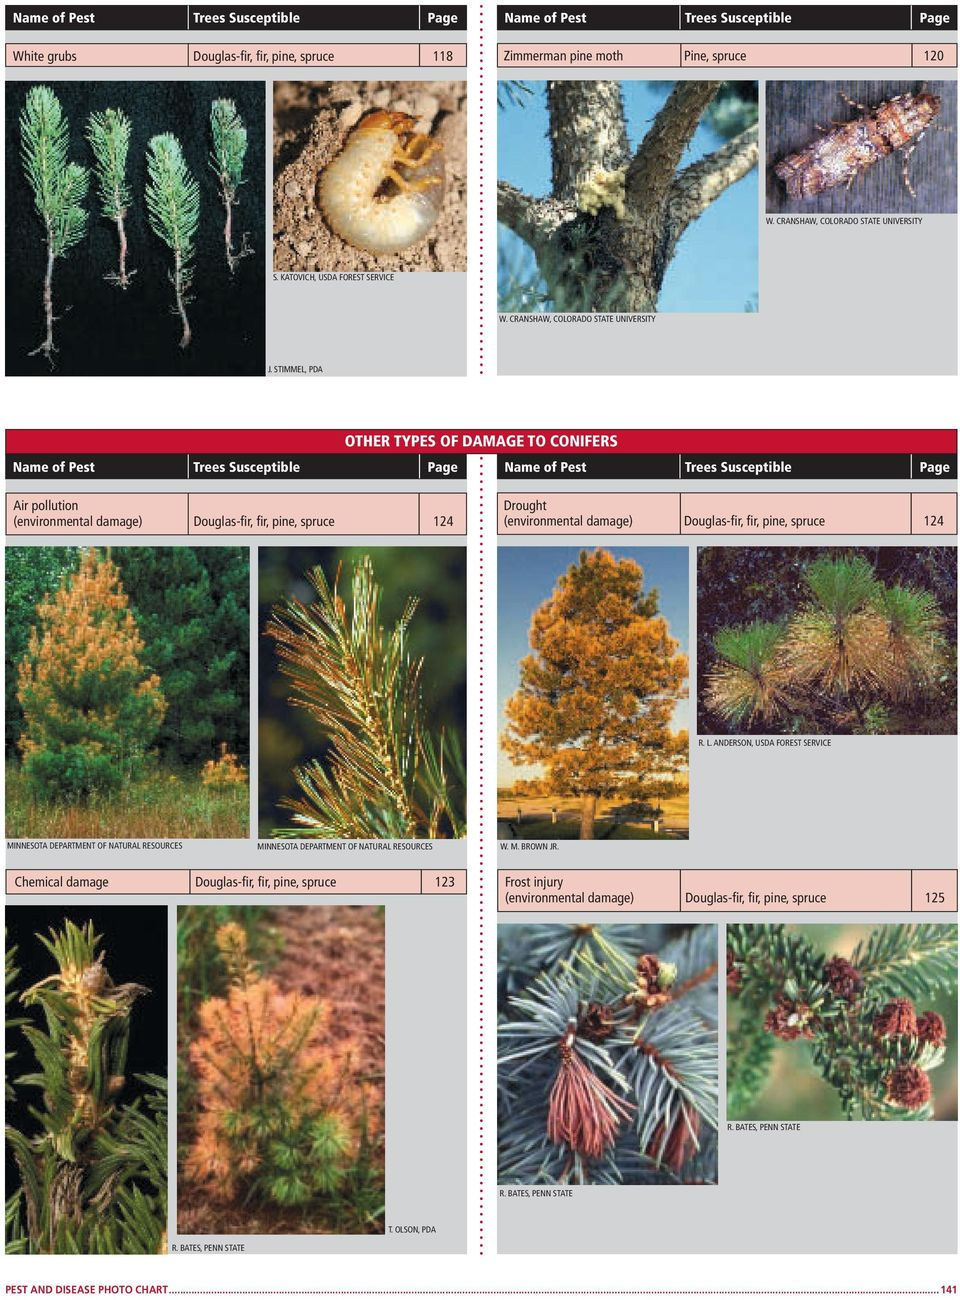 STIMMEL, OTHER TYPES OF DAMAGE TO CONIFERS Air pollution (environmental damage) Douglas-fir, fir, pine, spruce 124 Drought (environmental damage) Douglas-fir, fir, pine, spruce 124 R.